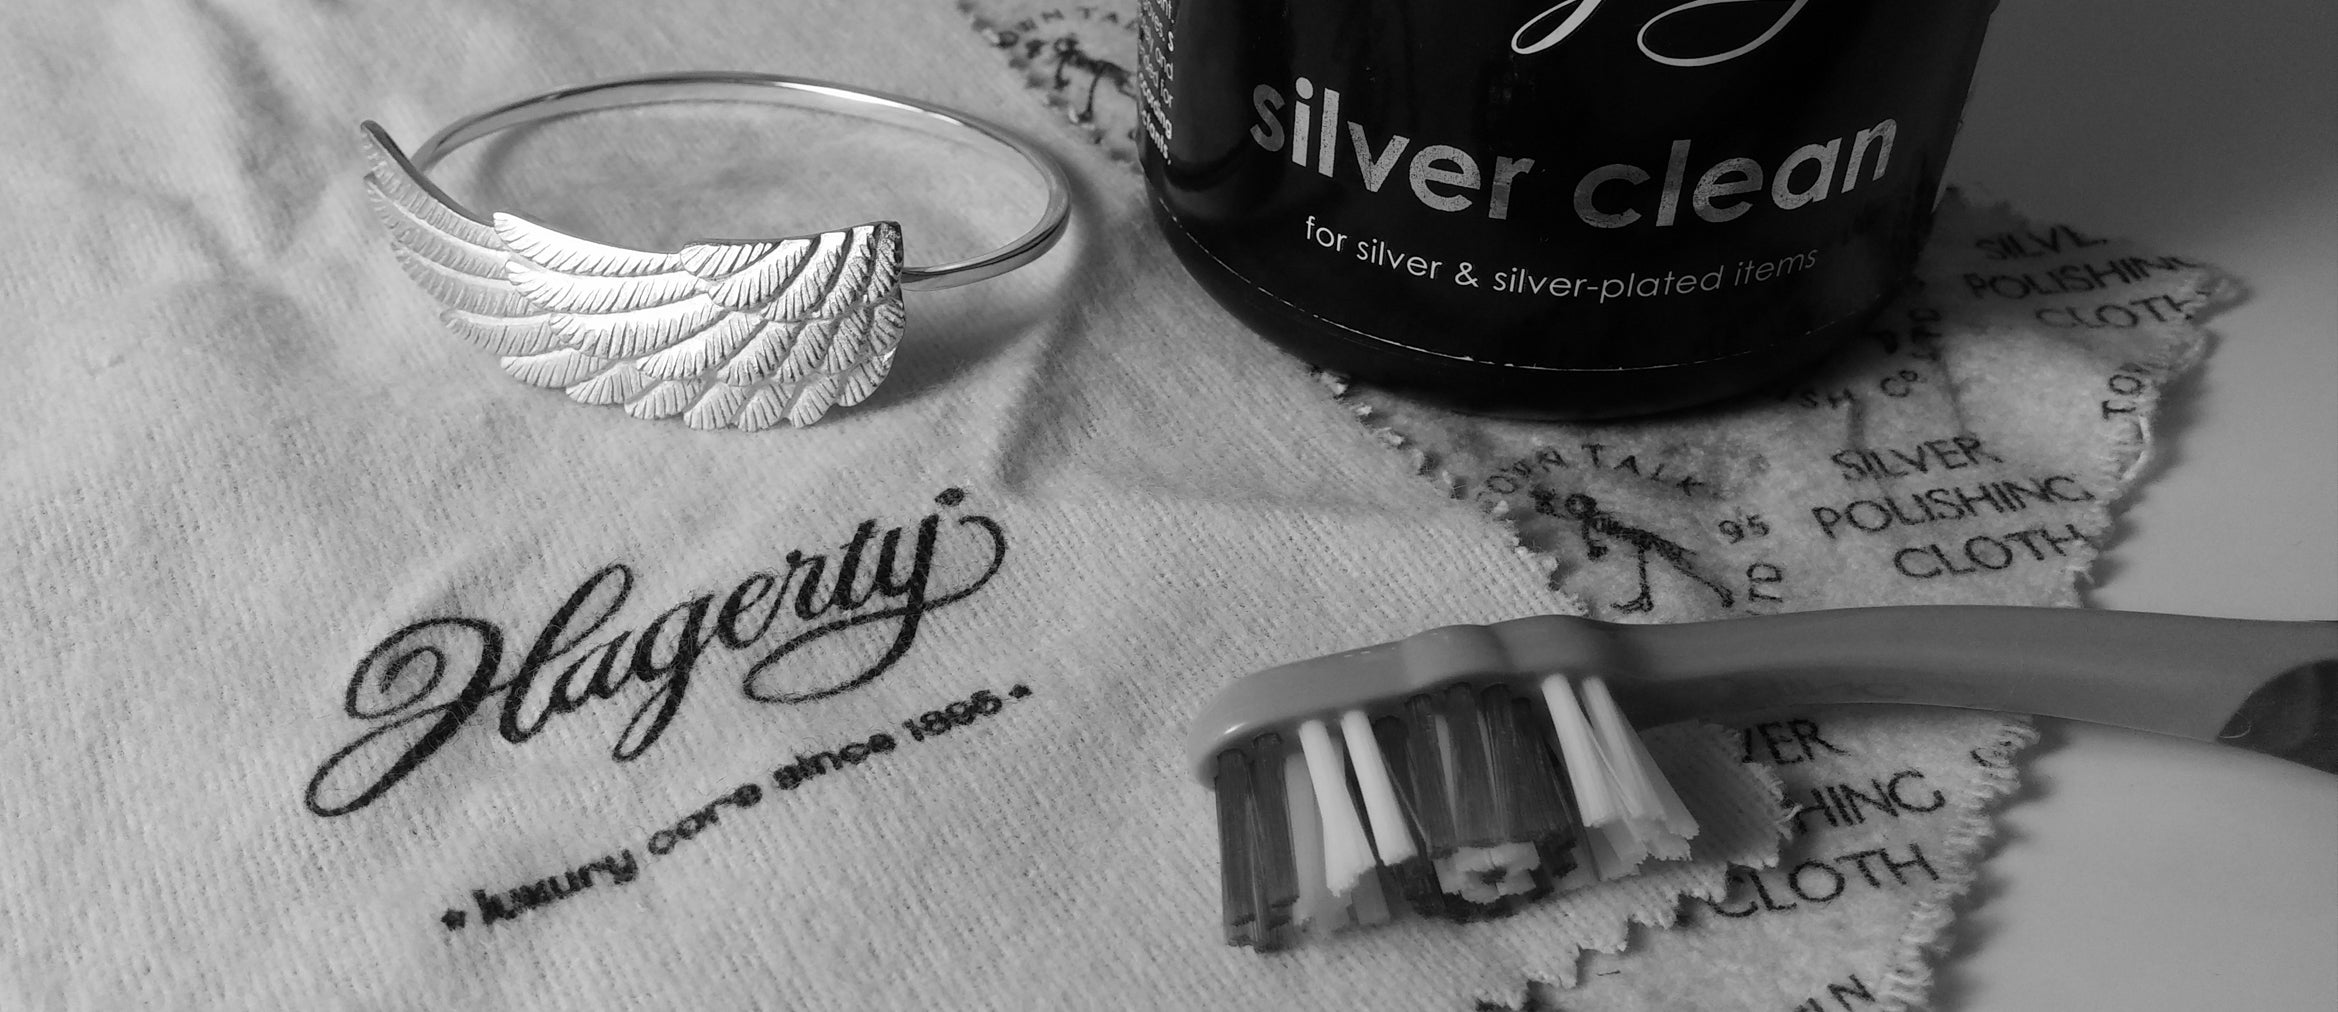 silver bangle and cleaning products